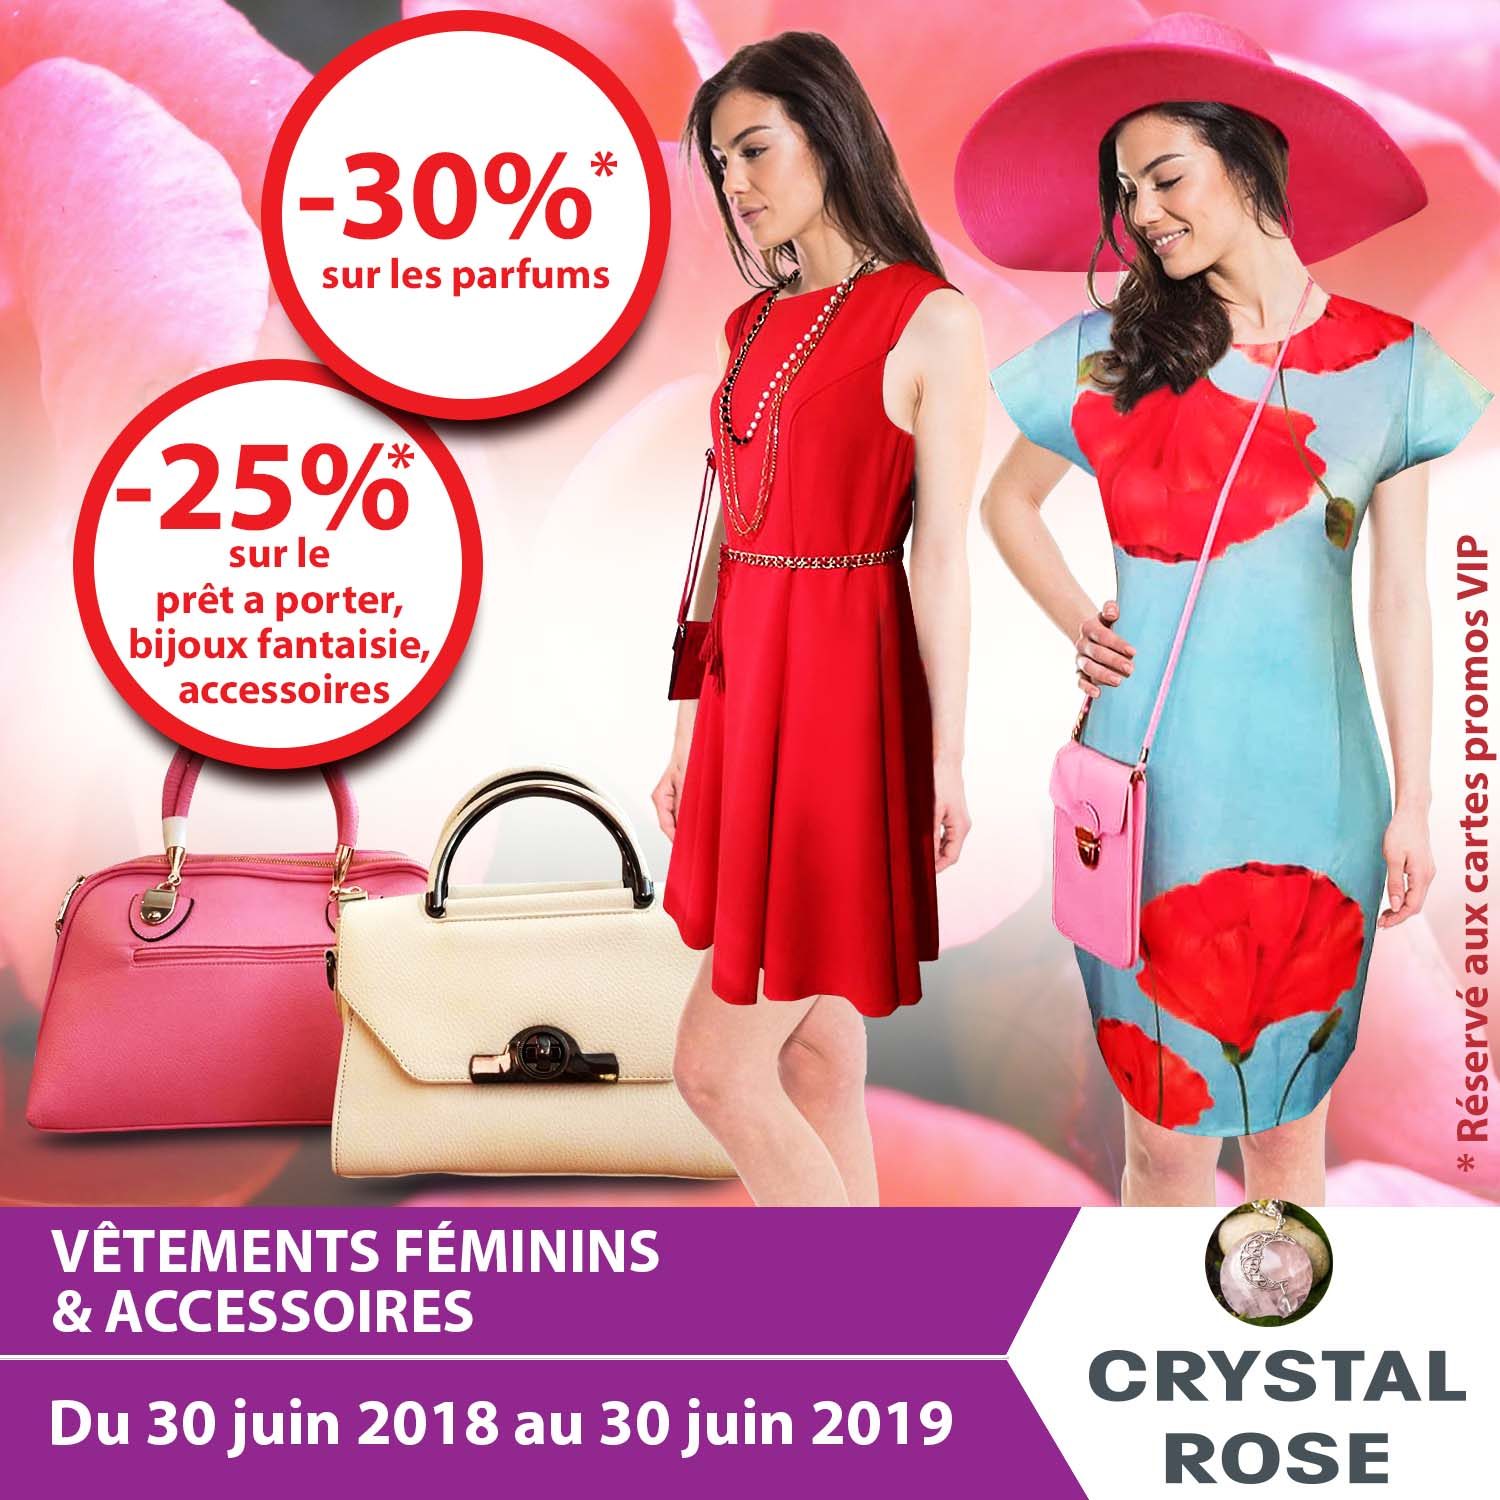 crystal-rose-magasin-top-promos-noumea-nouvelle-caledonie.nc.jpg